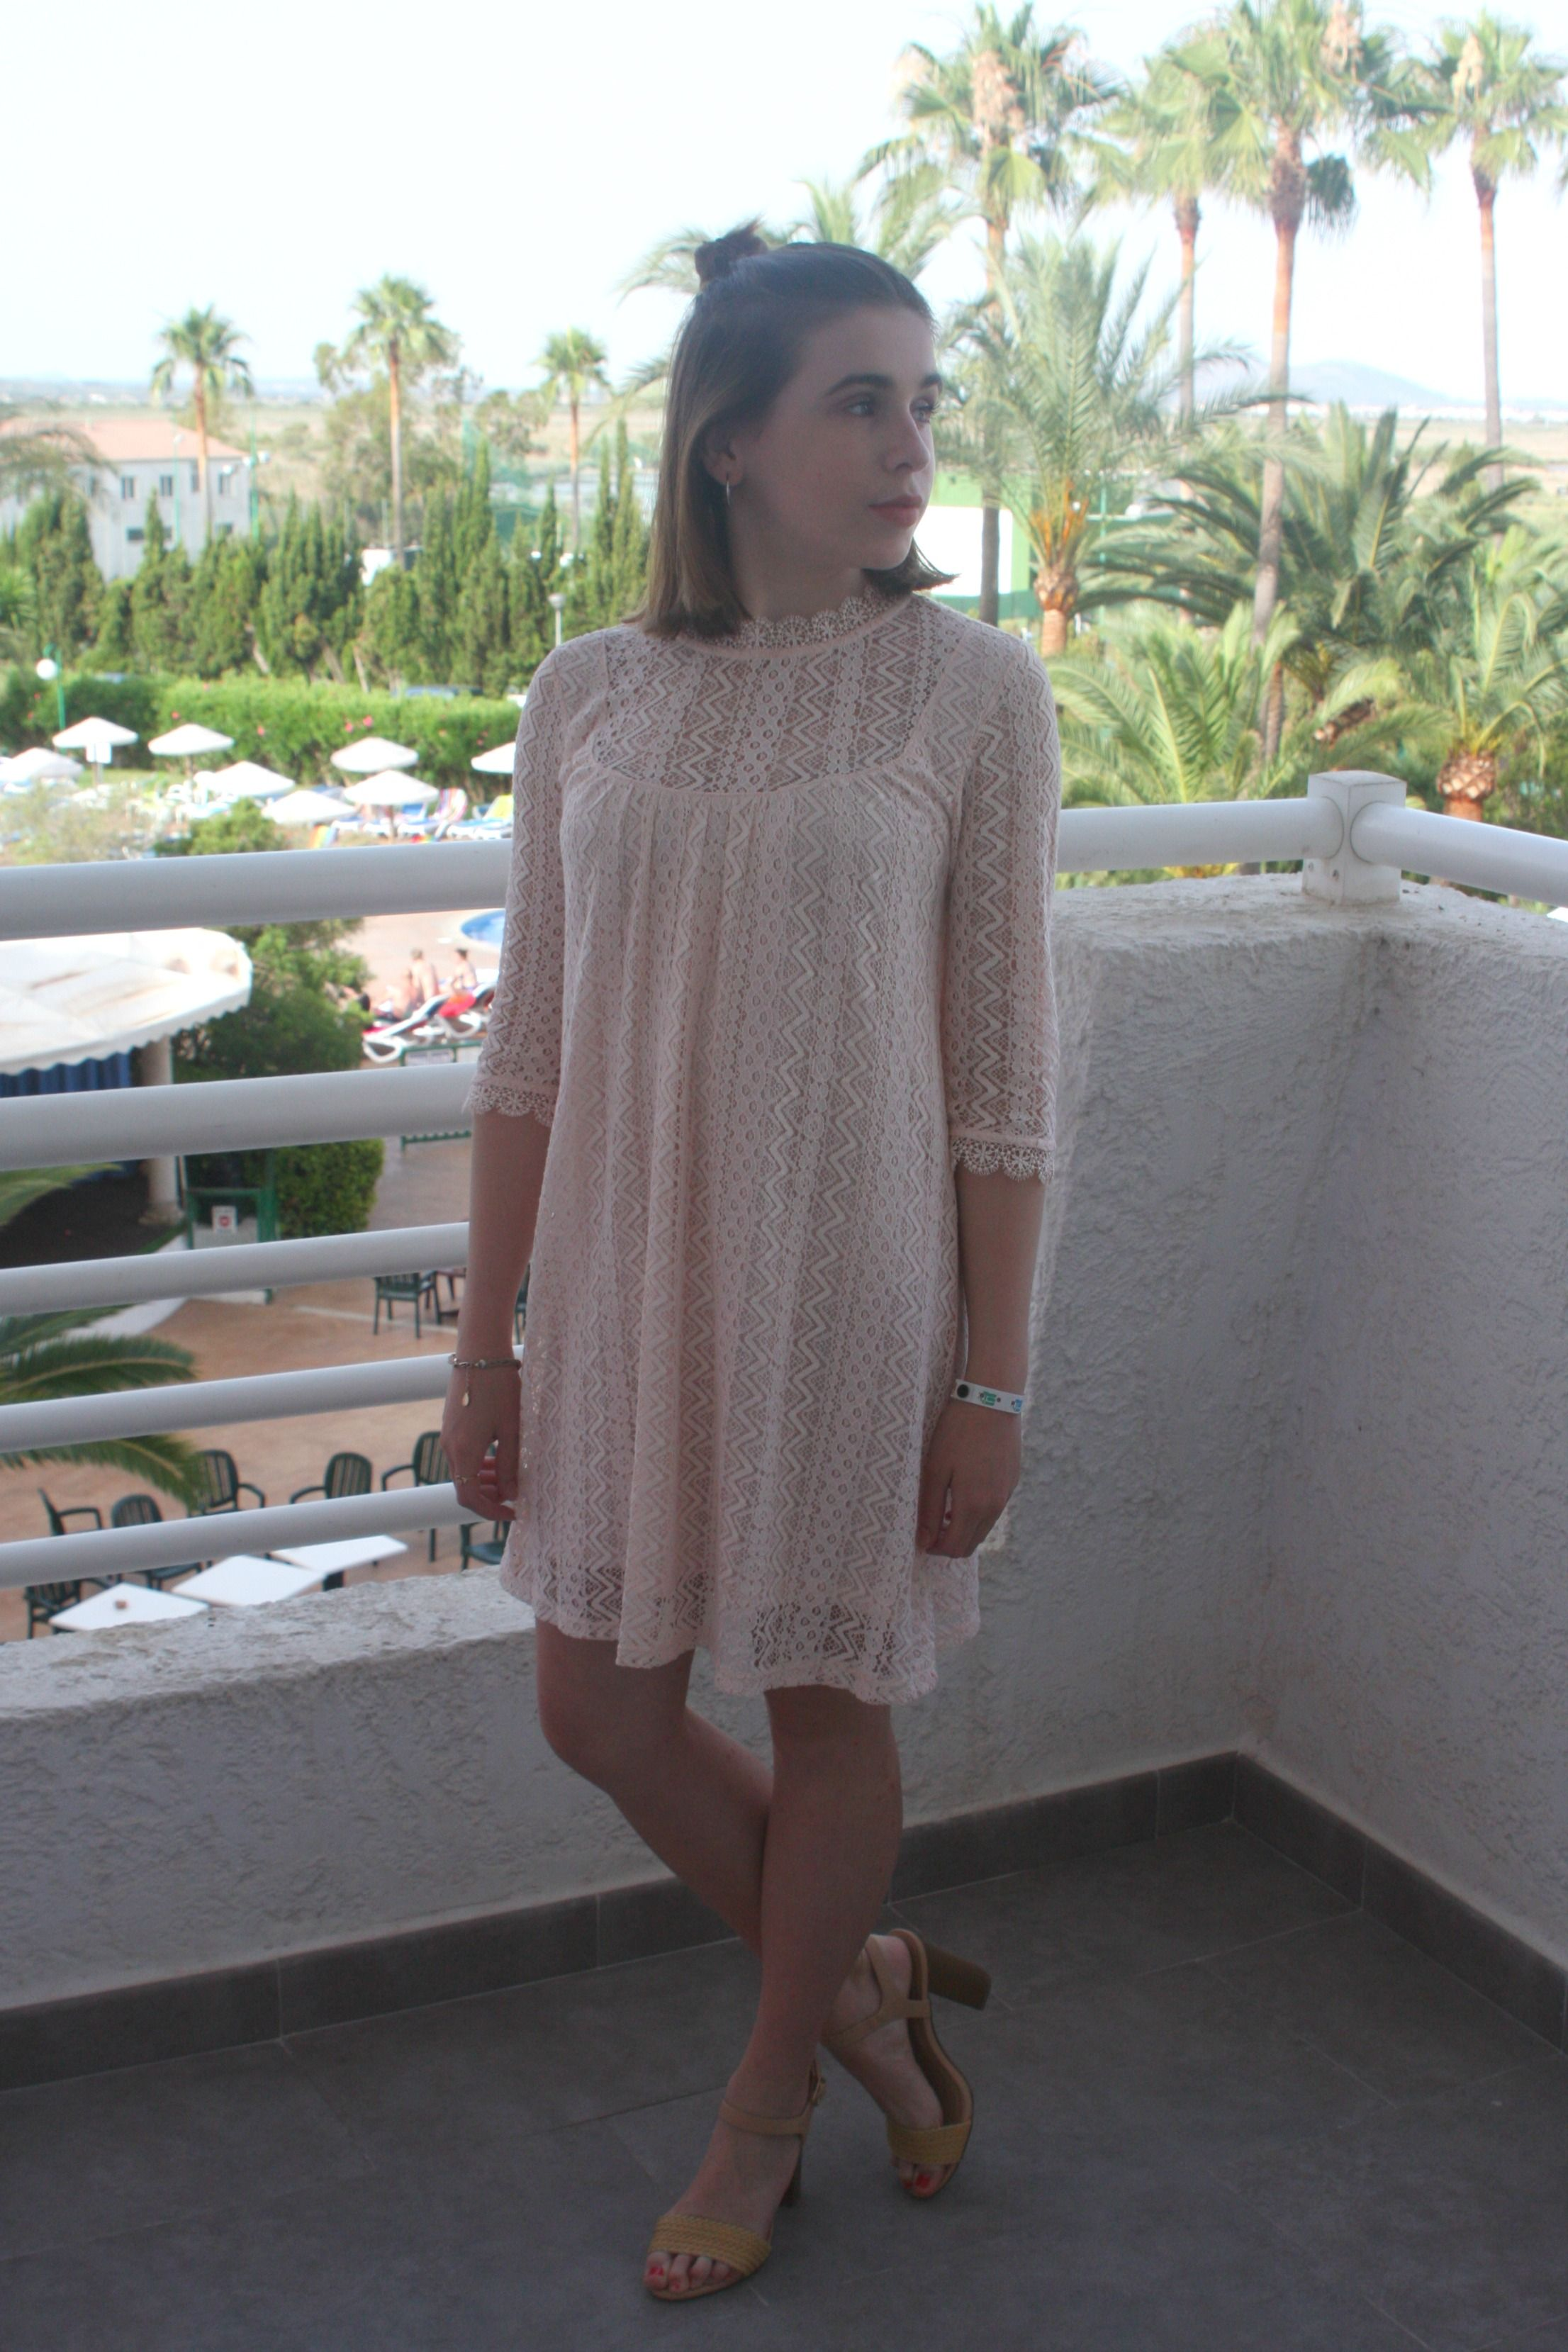 Beautiful pink lace dress #pink #lace #dress #vintage #heels #topshop #newlook #blog #blogger #fashion #style